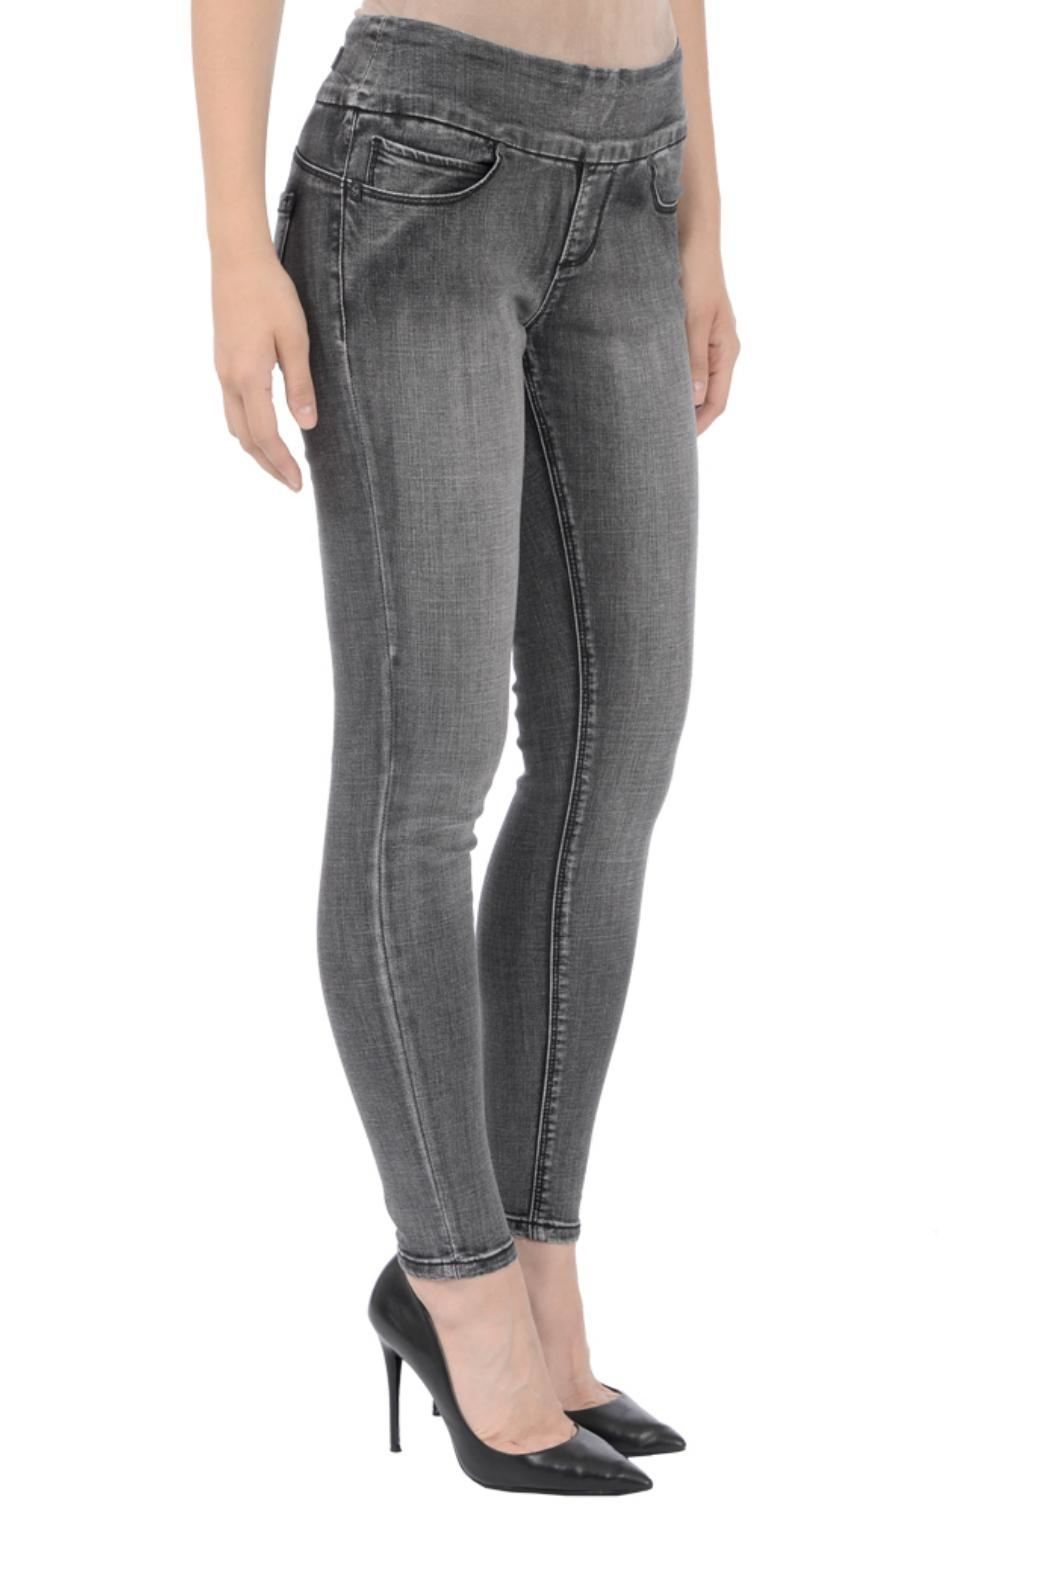 Lola Jeans Julia Pull-On Jeans - Front Full Image